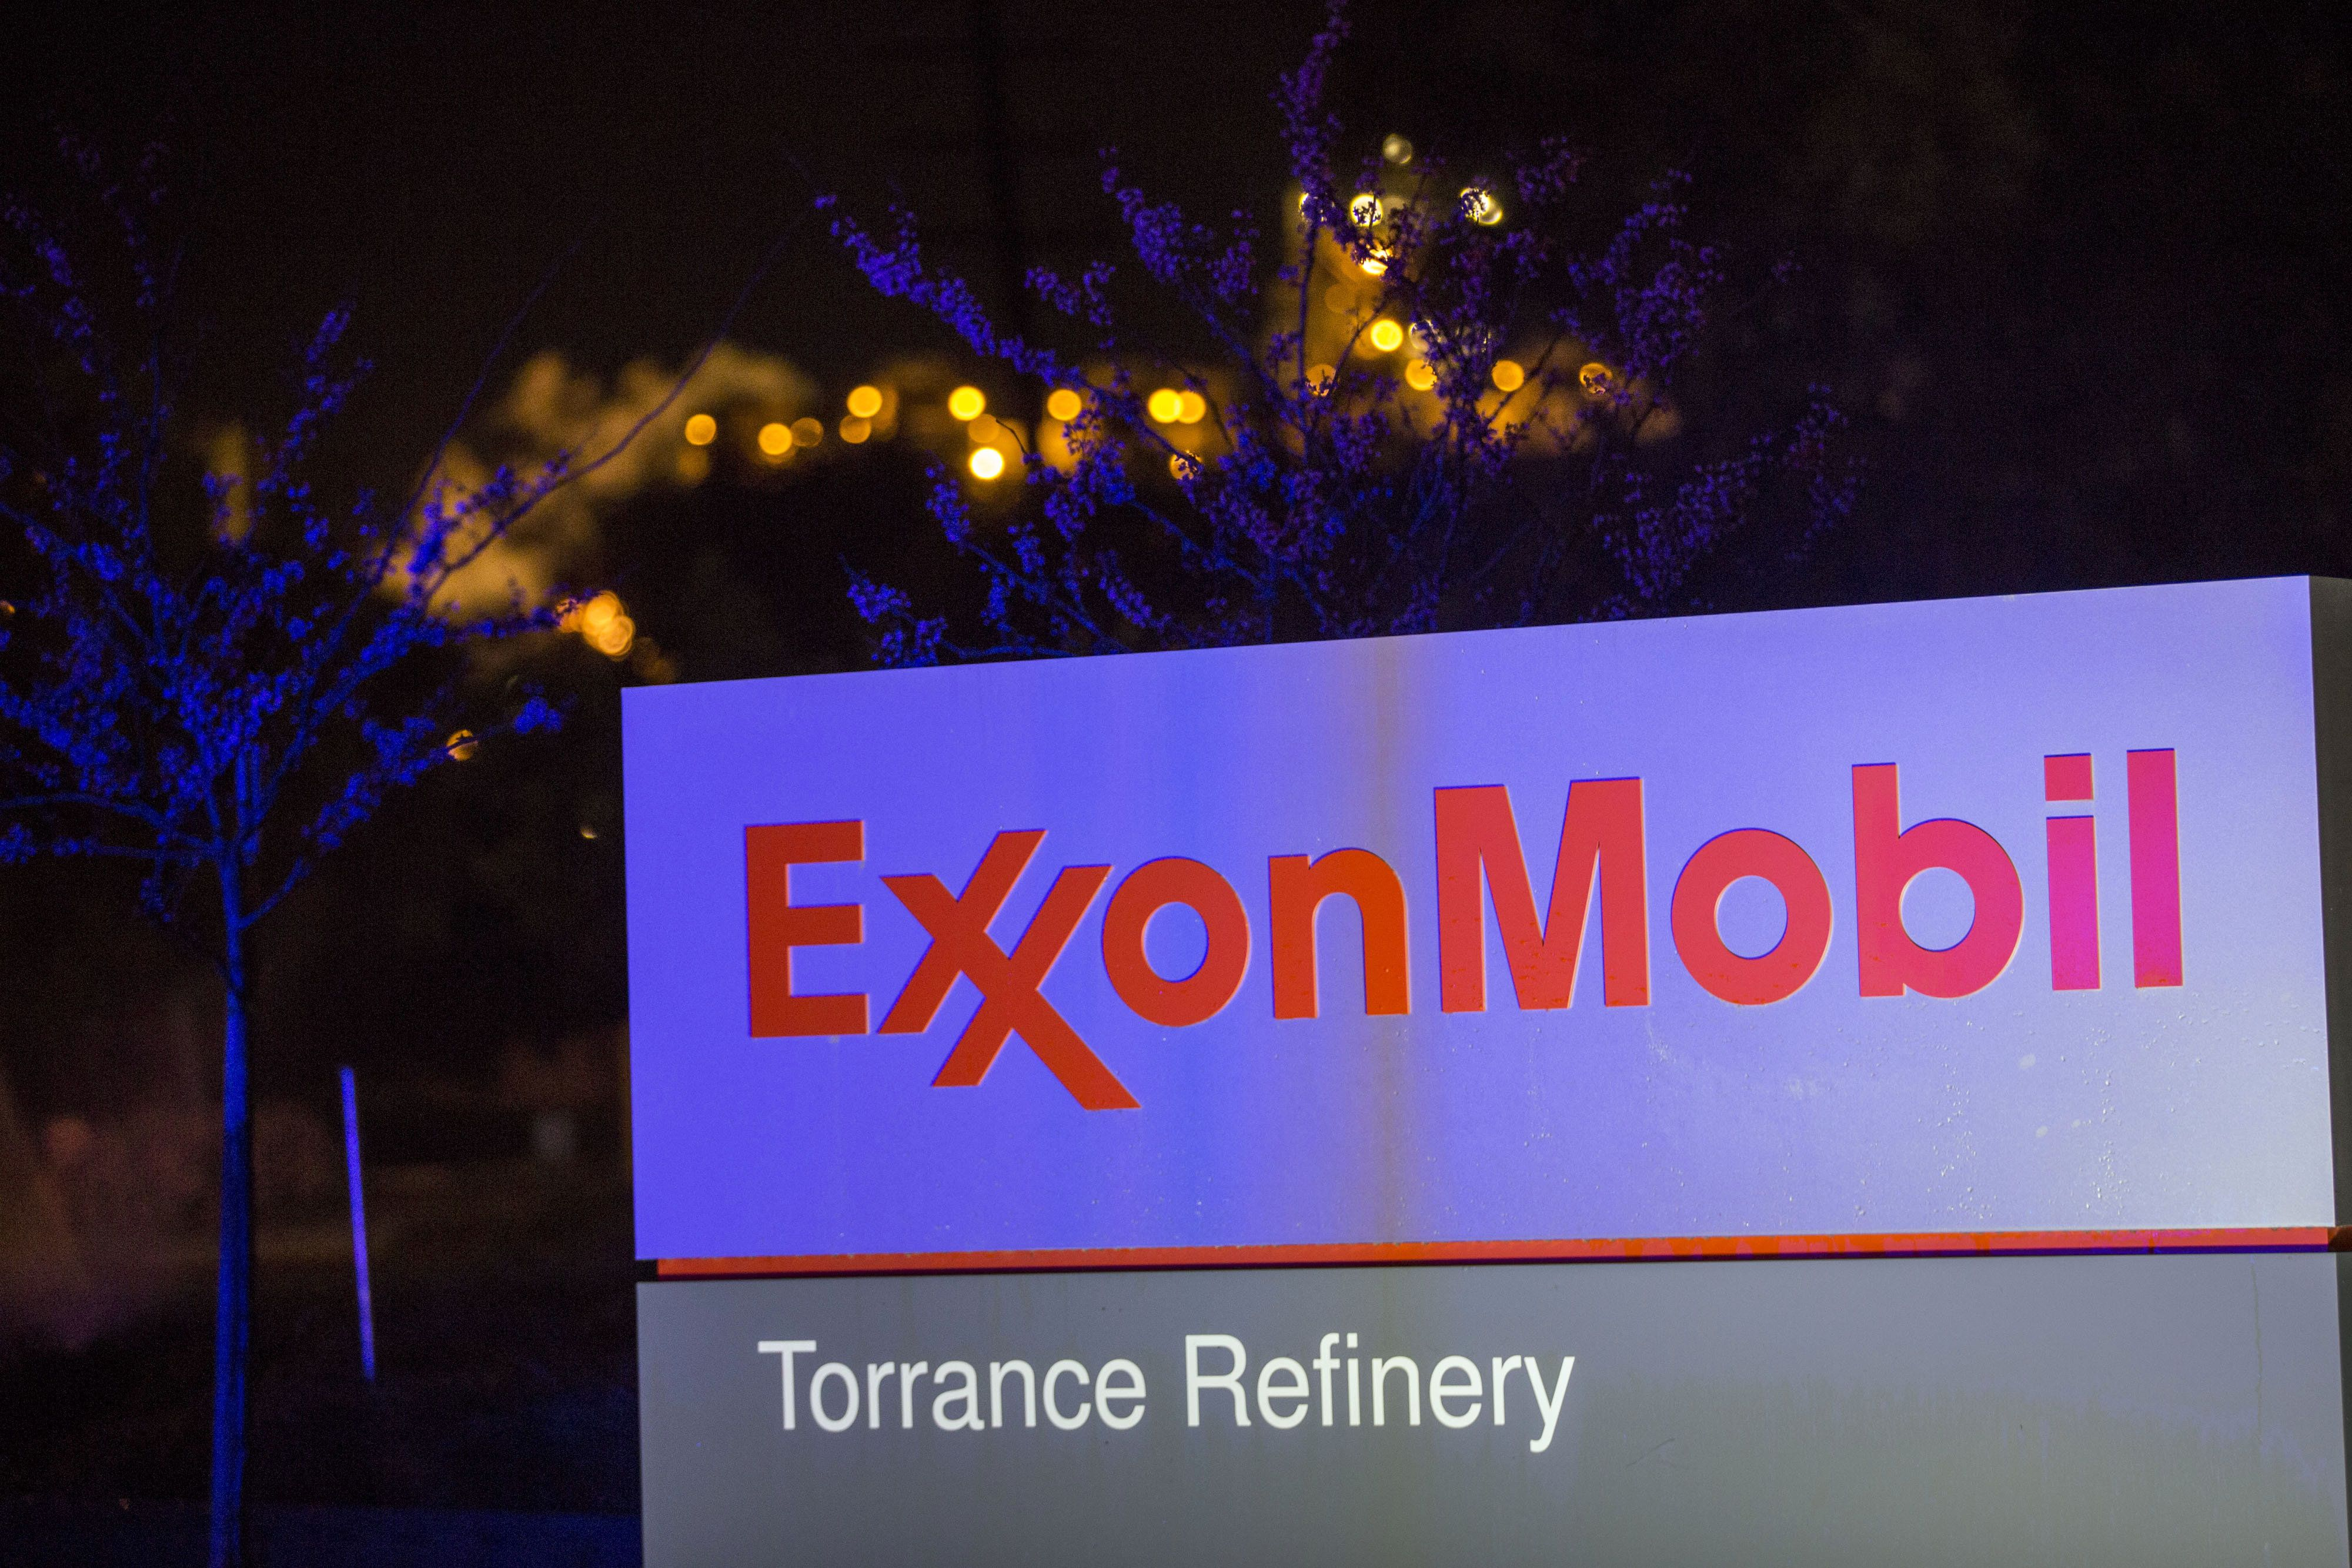 Lights from a police car are reflected on Exxon Mobil Corp. signage displayed at the company's Torrance Refinery in Torrance, California, U.S., on Wednesday, March 16, 2016. City officials said a 'flaring event' at the refinery, which led local residents to report smoke and fire in the air on social media, was caused by a power outage. Photographer: Patrick T. Fallon/Bloomberg via Getty Images